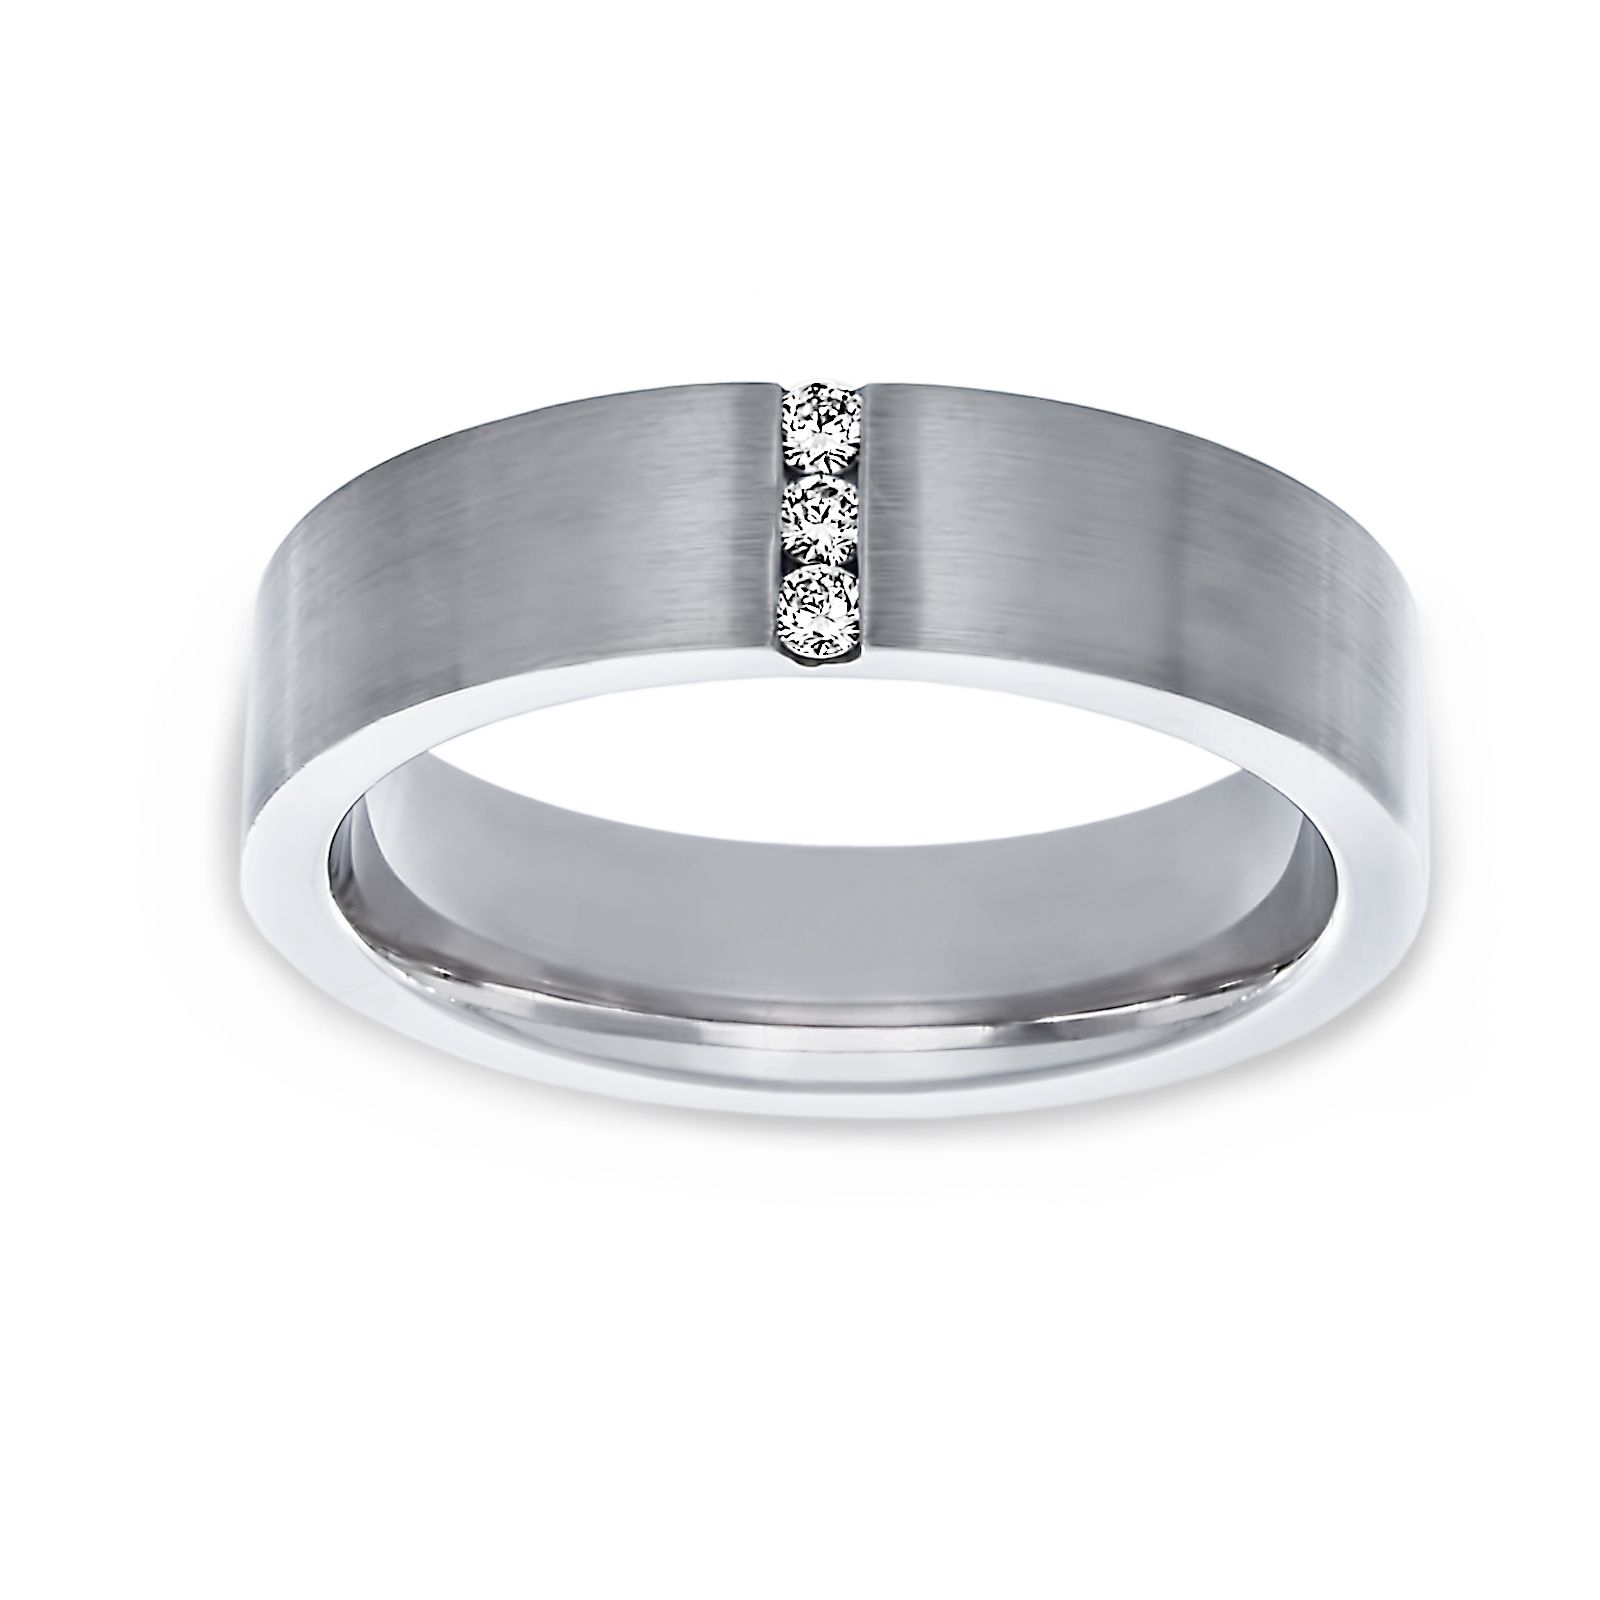 Twolondon Wide Satin Finish Vertical Diamond Row Wedding Band Regarding Most Up To Date Vertical Diamond Row Wedding Bands (Gallery 4 of 25)